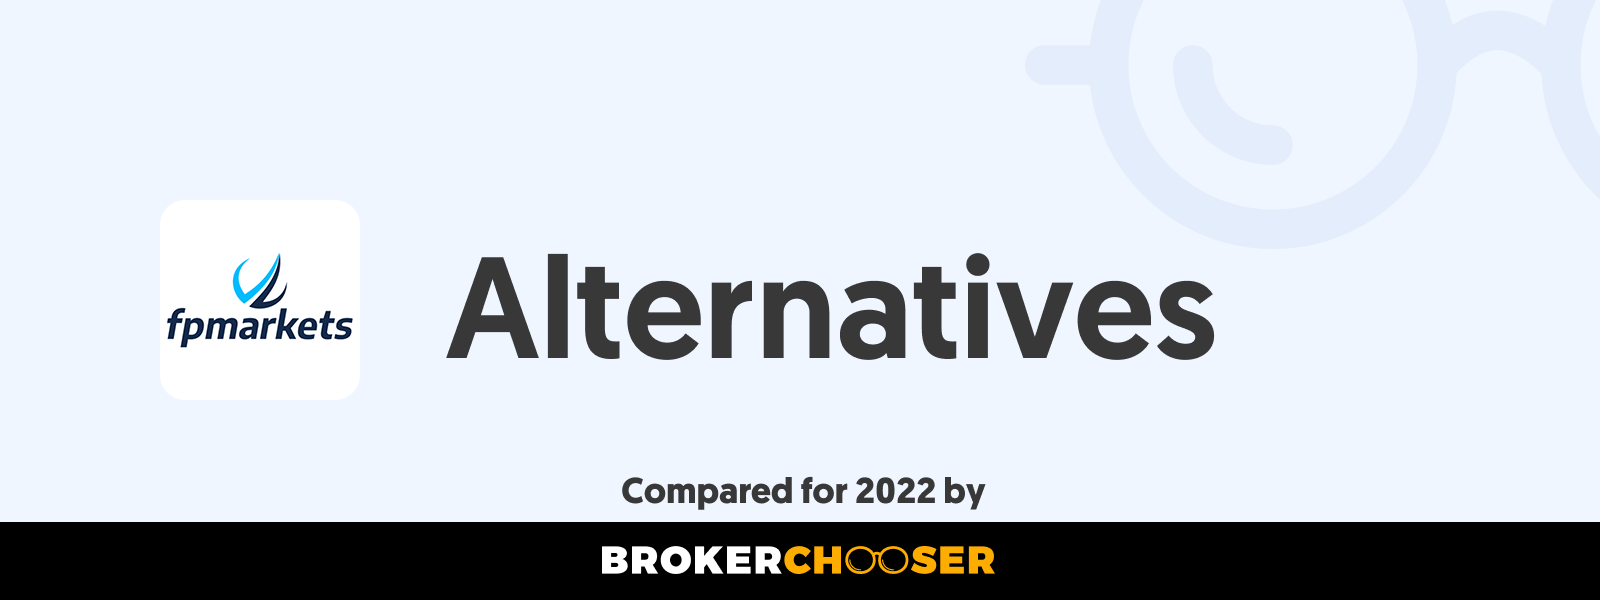 FP Markets Alternatives